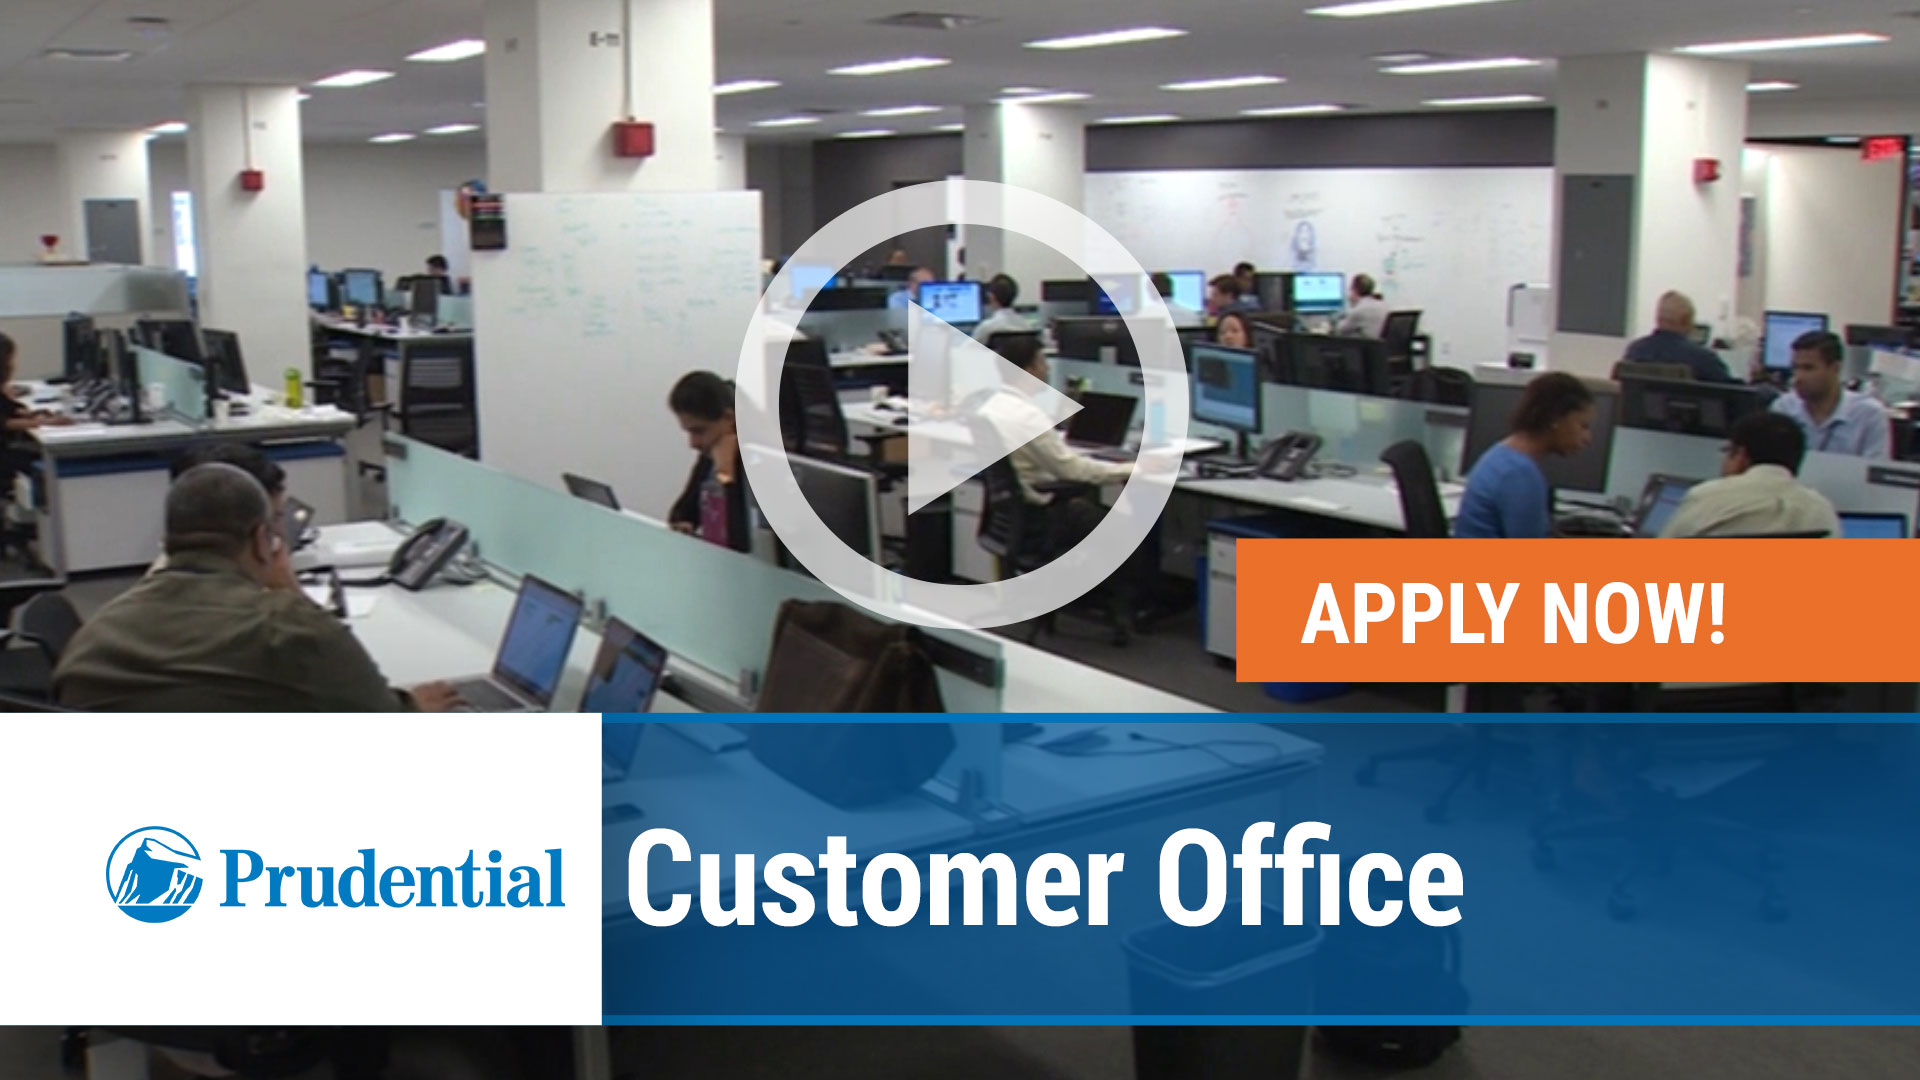 Watch our careers video for available job opening Customer Office in Newark, NJ